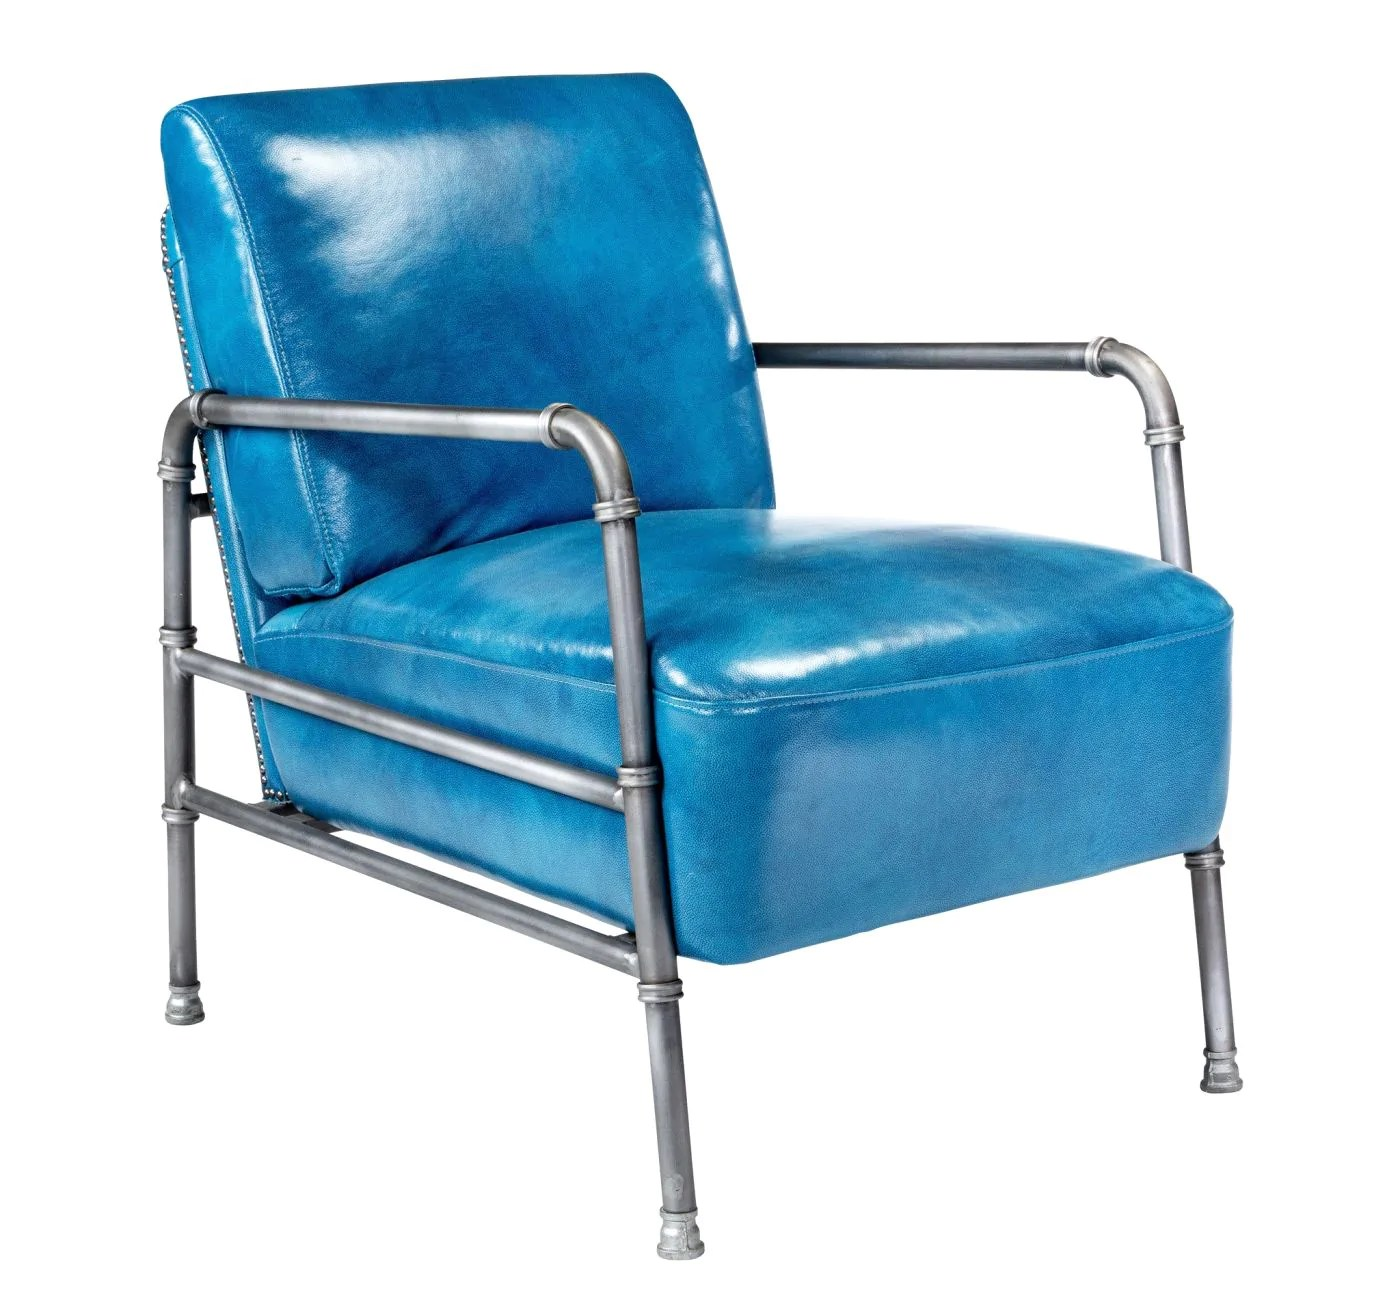 Blue Leather Club Chair Best Price On Moe 39s Home Collection Pk 1037 26 Royce Retro